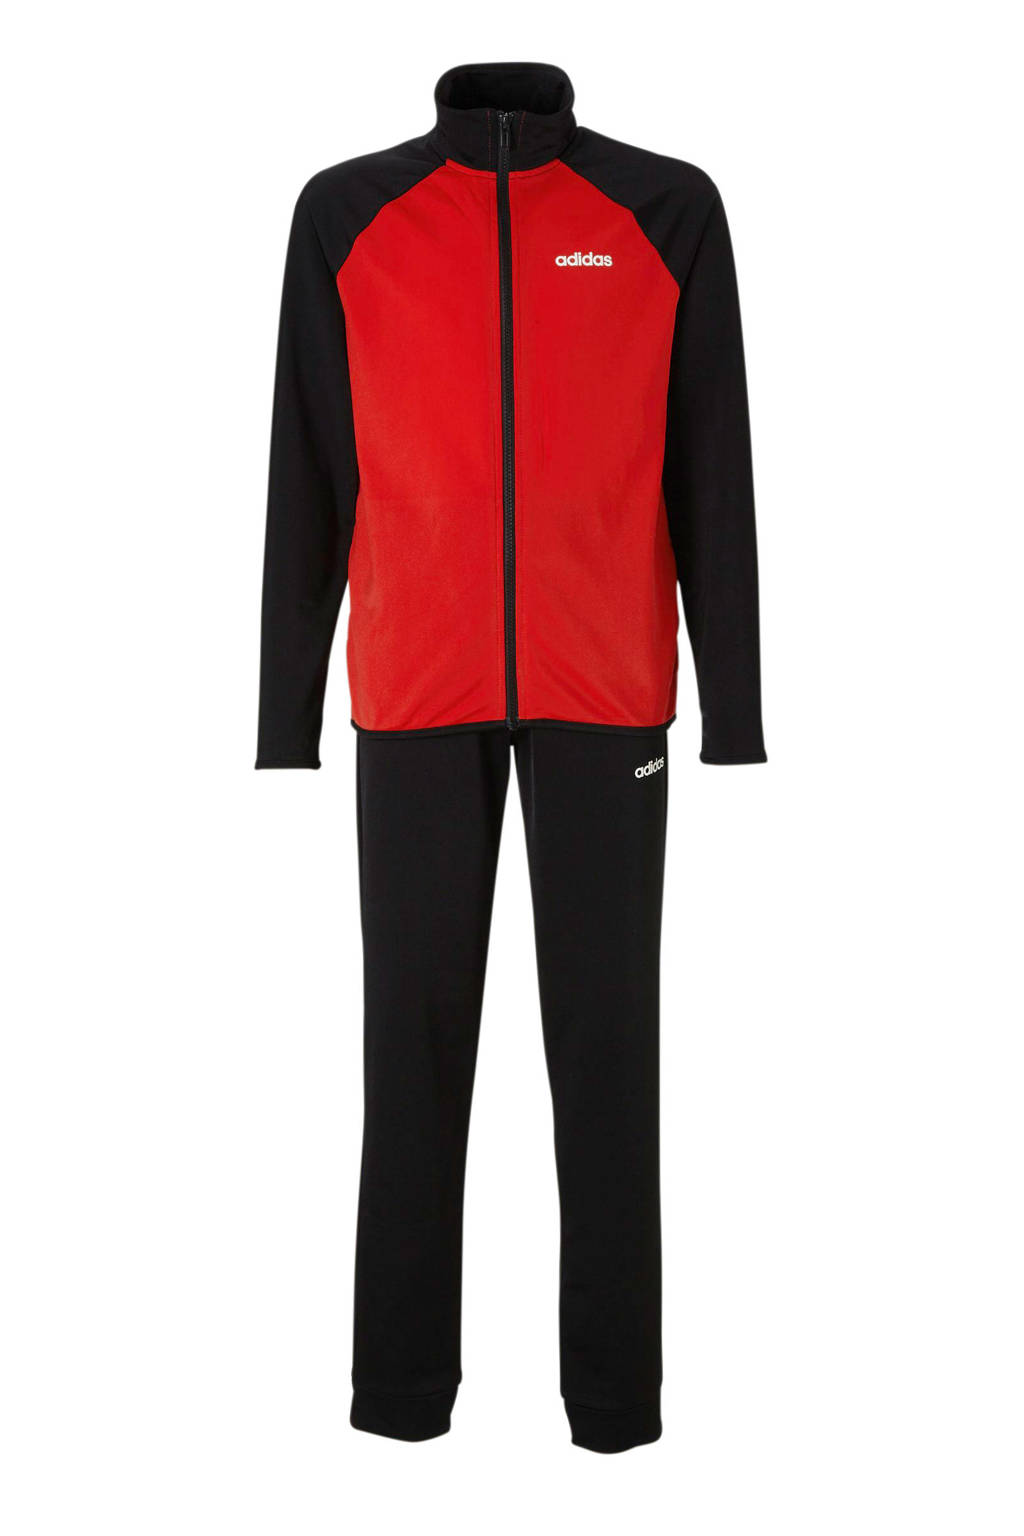 adidas Performance   trainingspak rood, Rood/zwar